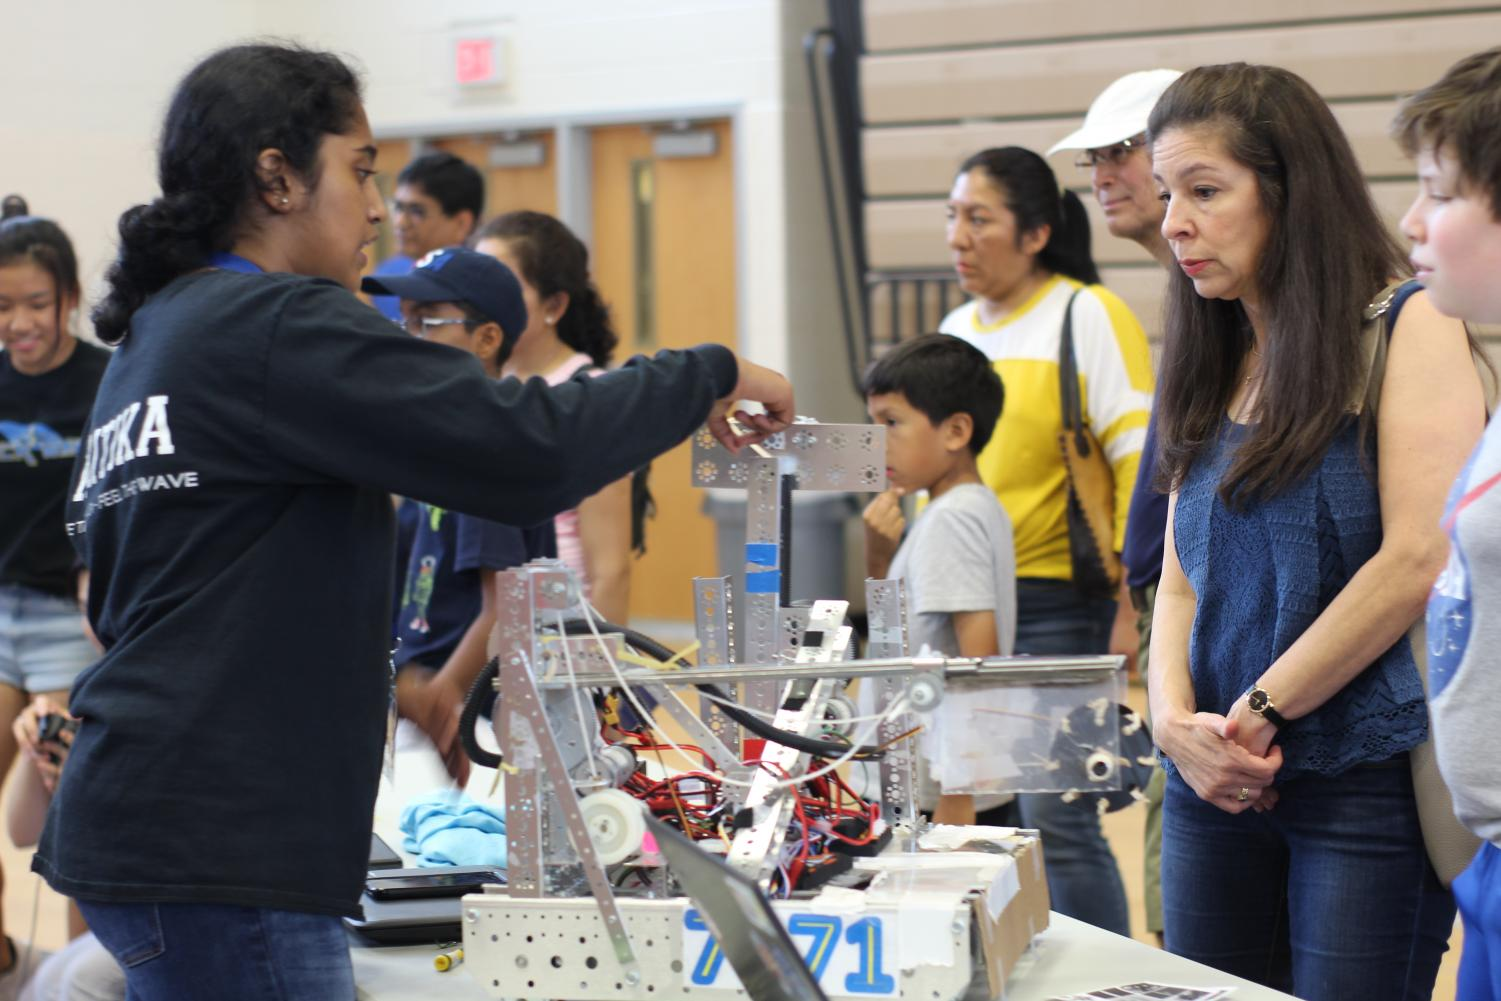 FTC+Shockwave+representative%2C+sophomore+Kritika+Jothishankar+explains+the+workings+of+her+team%27s+competition+robot+to+a+few+of+the+many+Techstrav+guests.